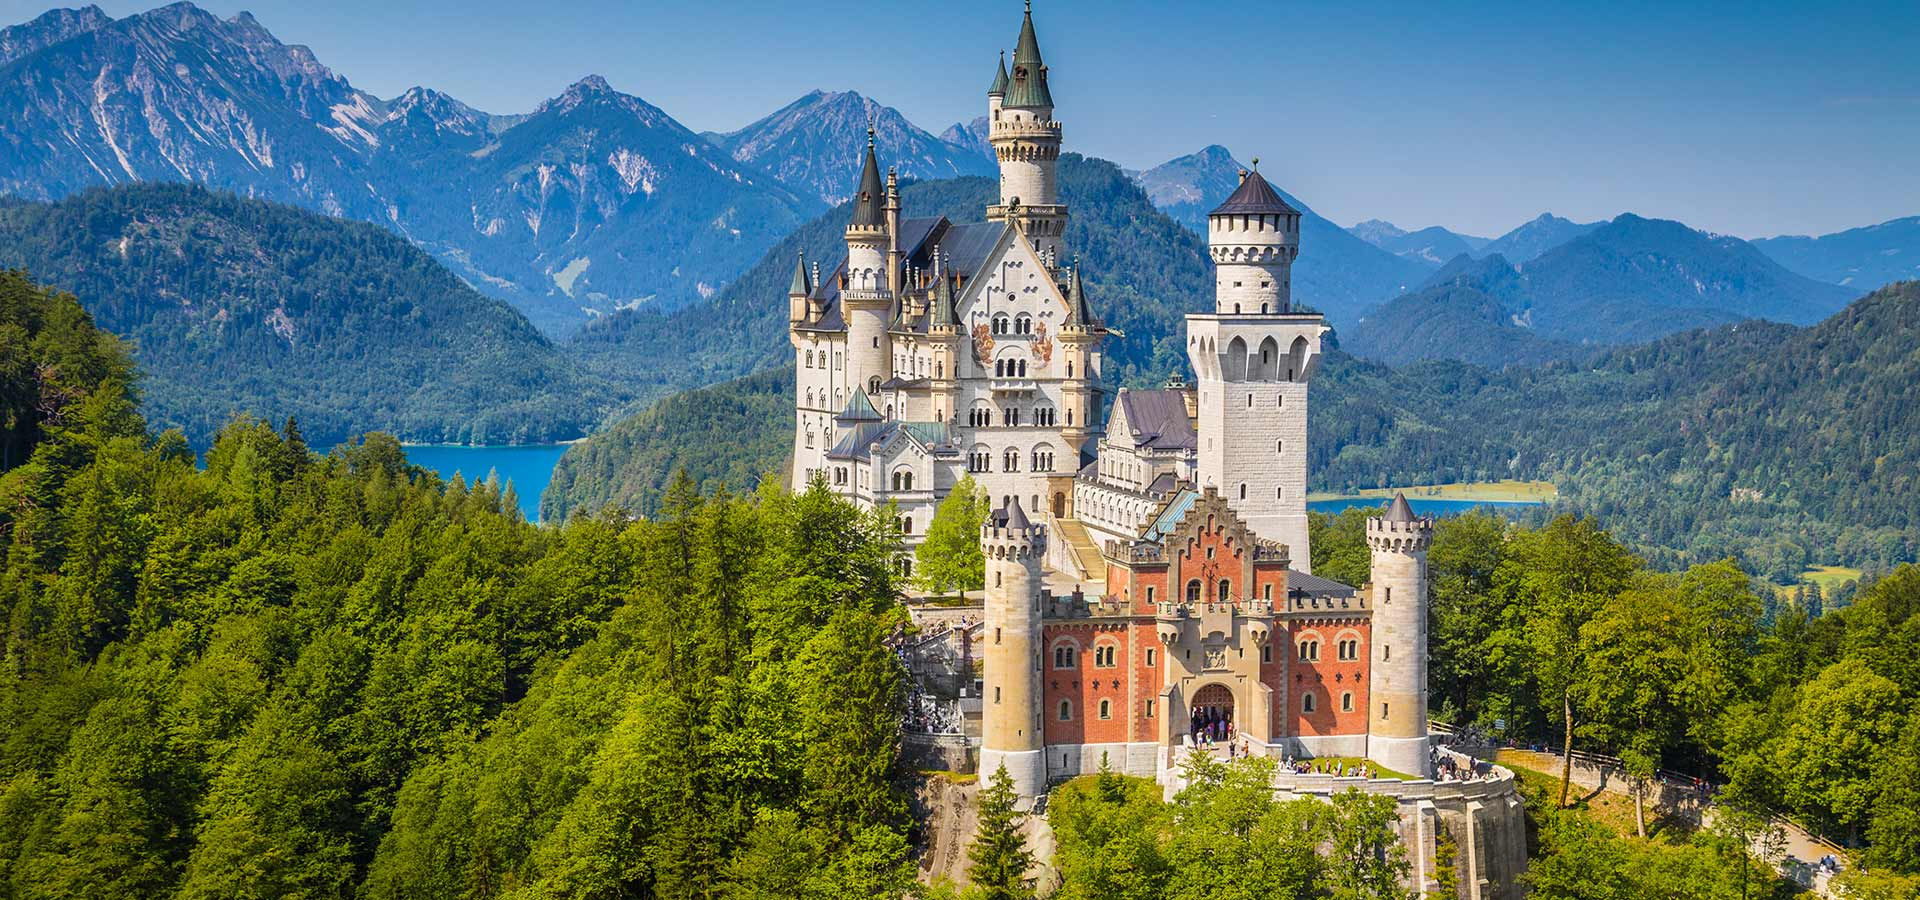 Spending Up to $1200 on Flight Tickets to Munich 10 Things You Can Enjoy for Free